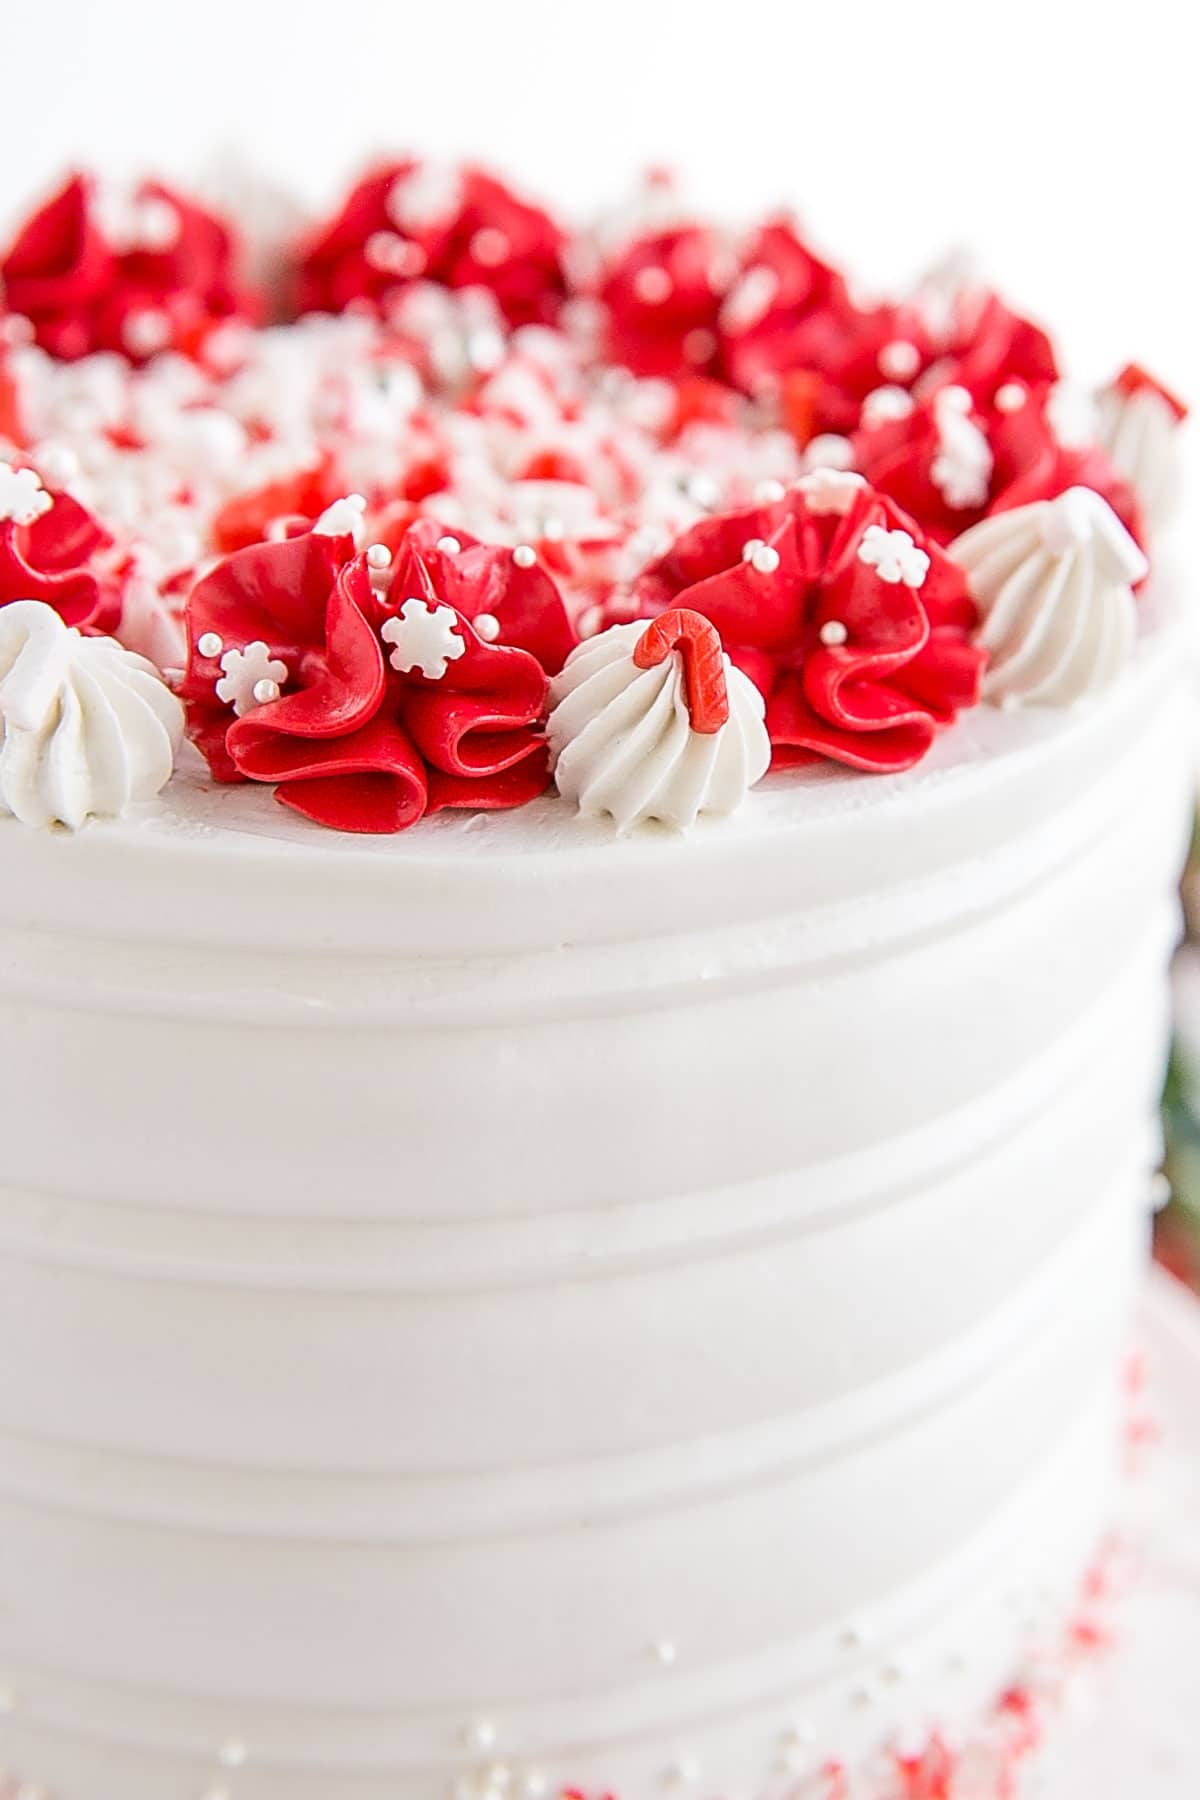 Close up of the red dollops on top of the cake.